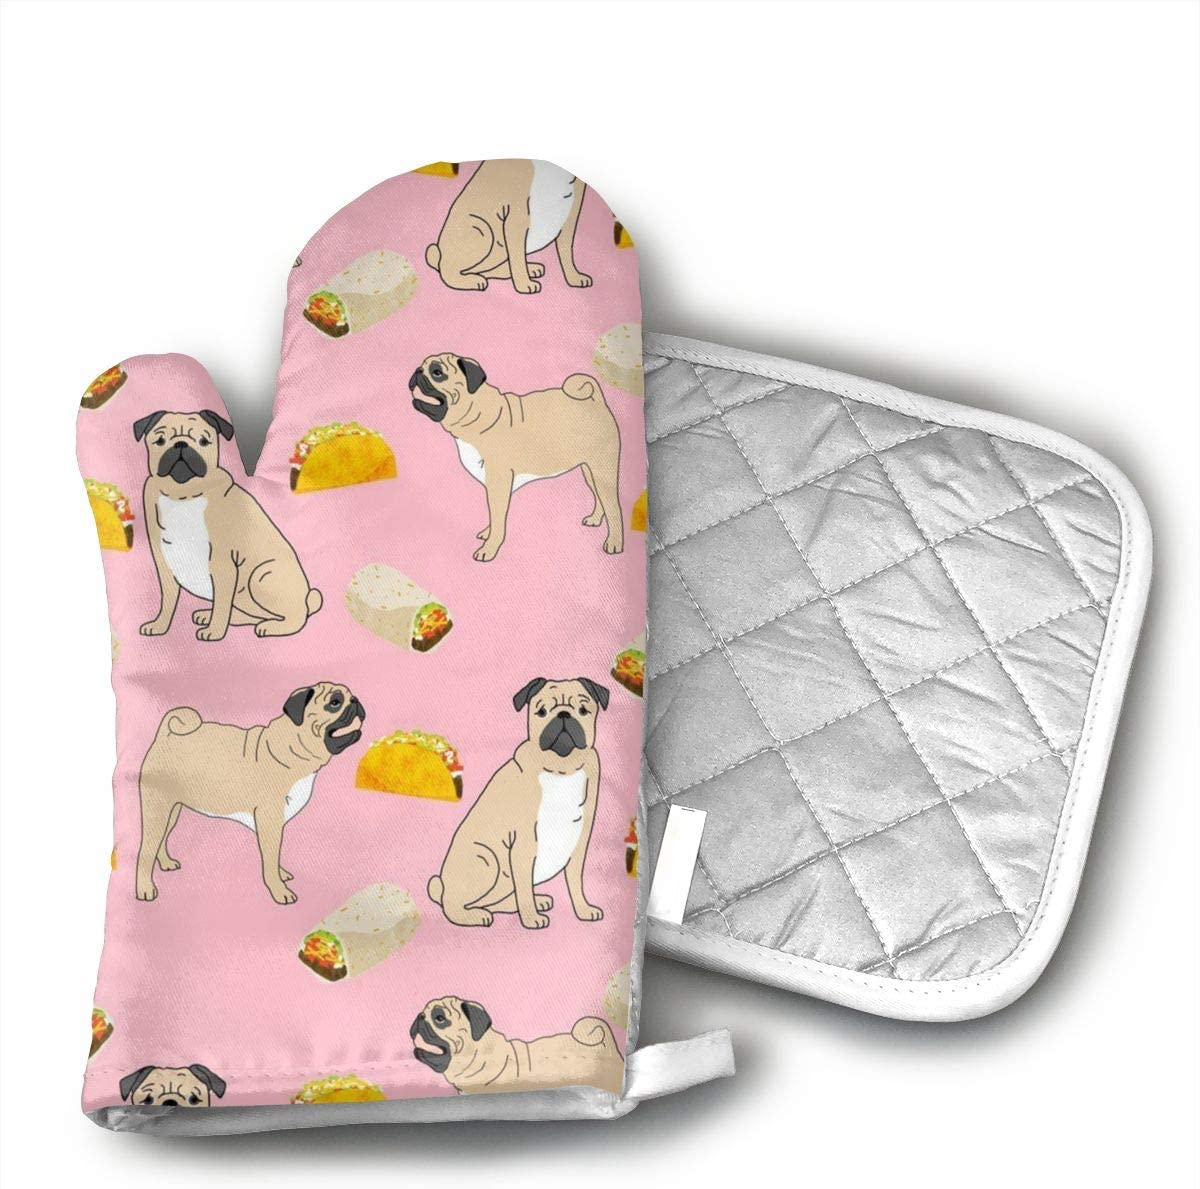 APDWFF Pugs Dog Tacos Food Oven Mitts,Professional Heat Resistant Microwave Oven Insulation Thickening Gloves Soft Inner Lining Kitchen Cooking Mittens